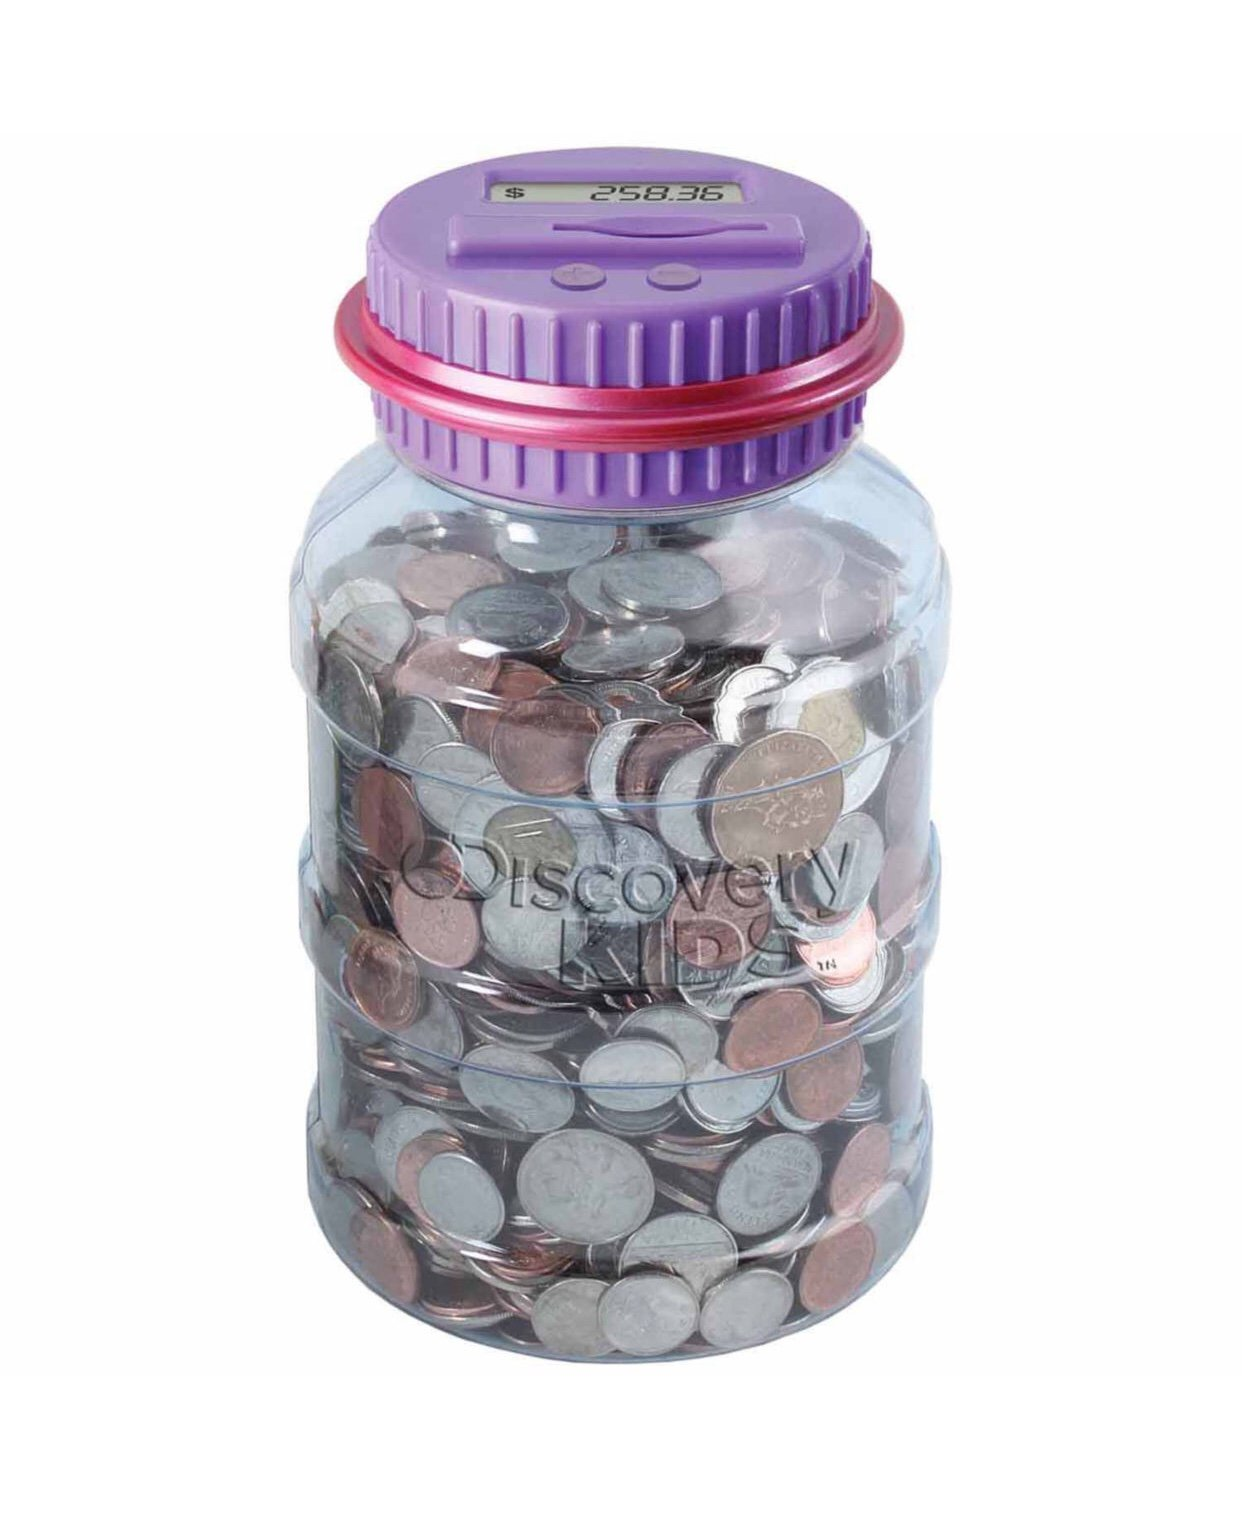 Discovery Kids Coin-Counting Money Jar